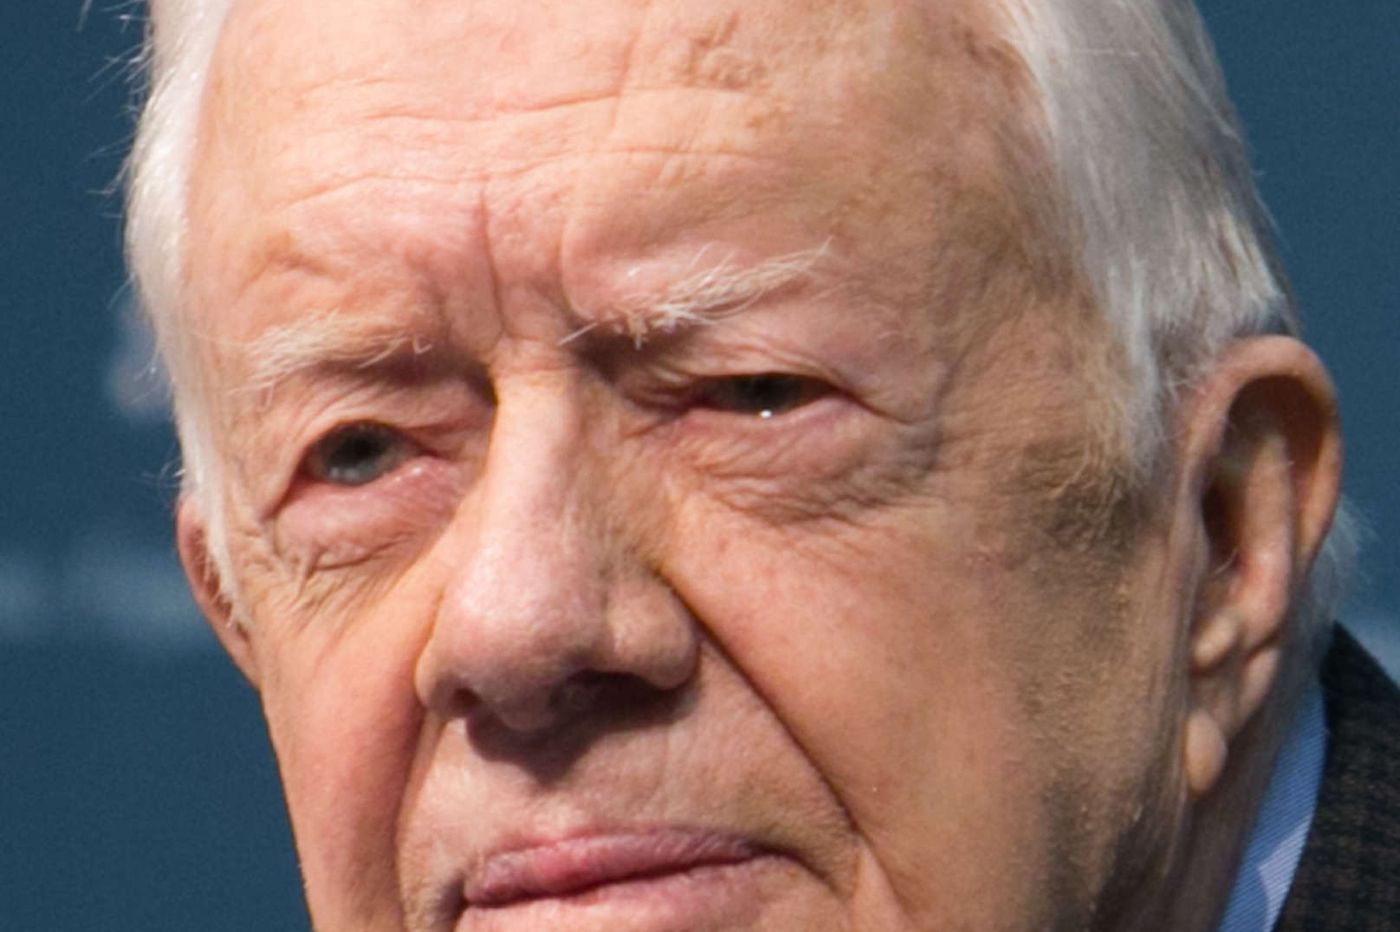 Jimmy Carter says brain scan shows no cancer